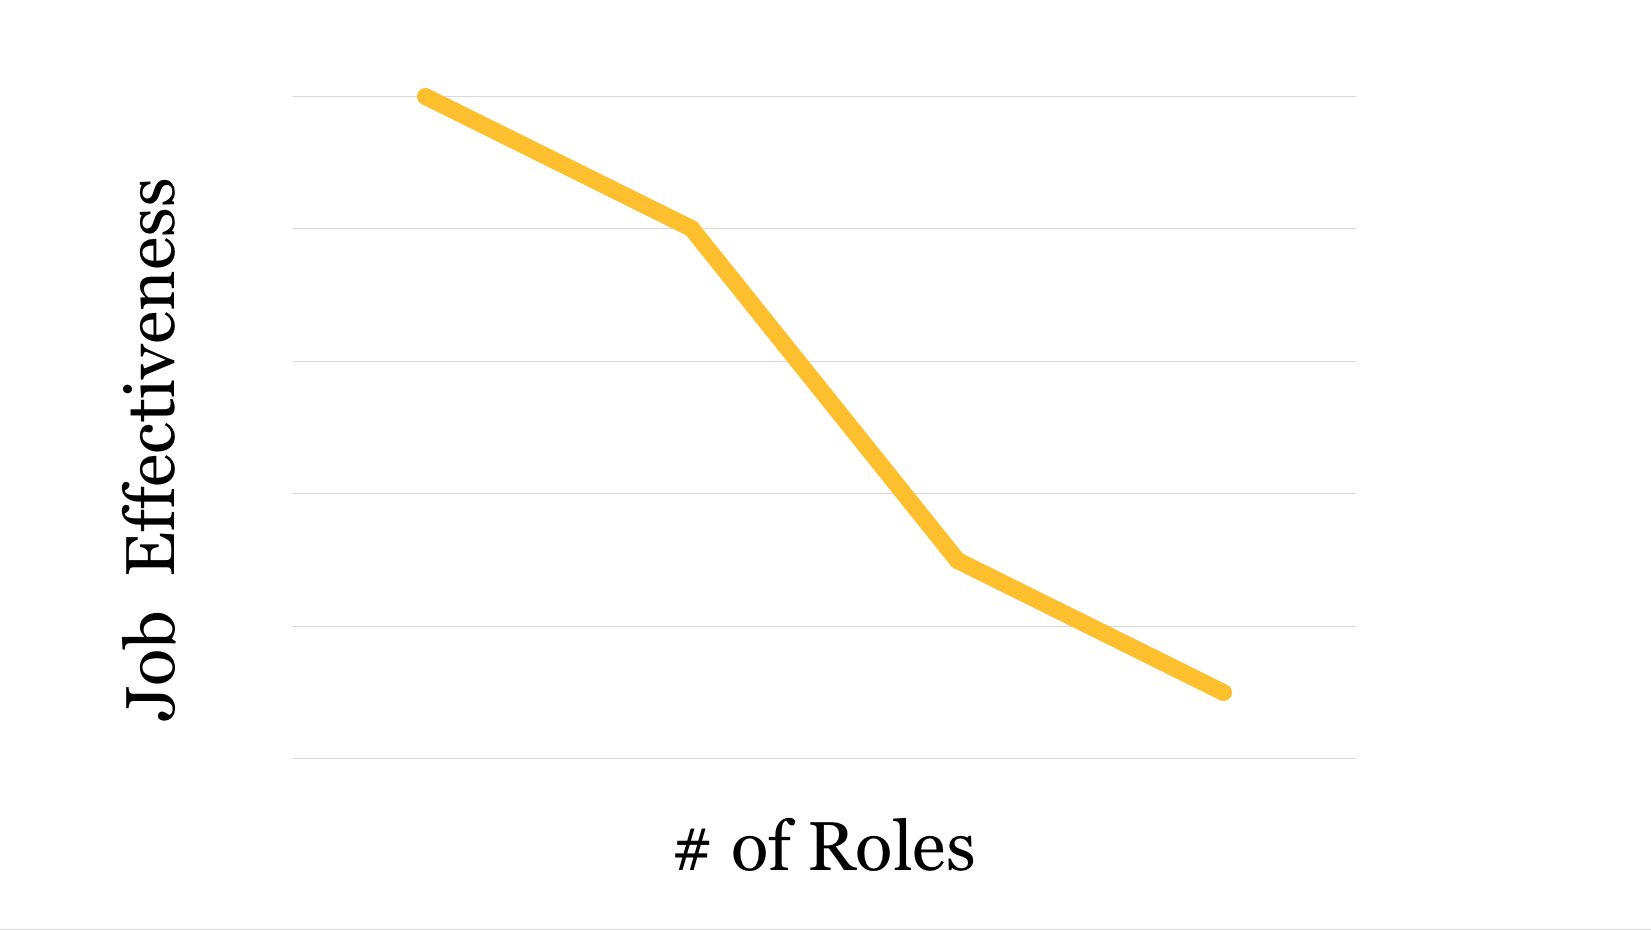 Chart of content strategy, marketing, writer effectiveness per role